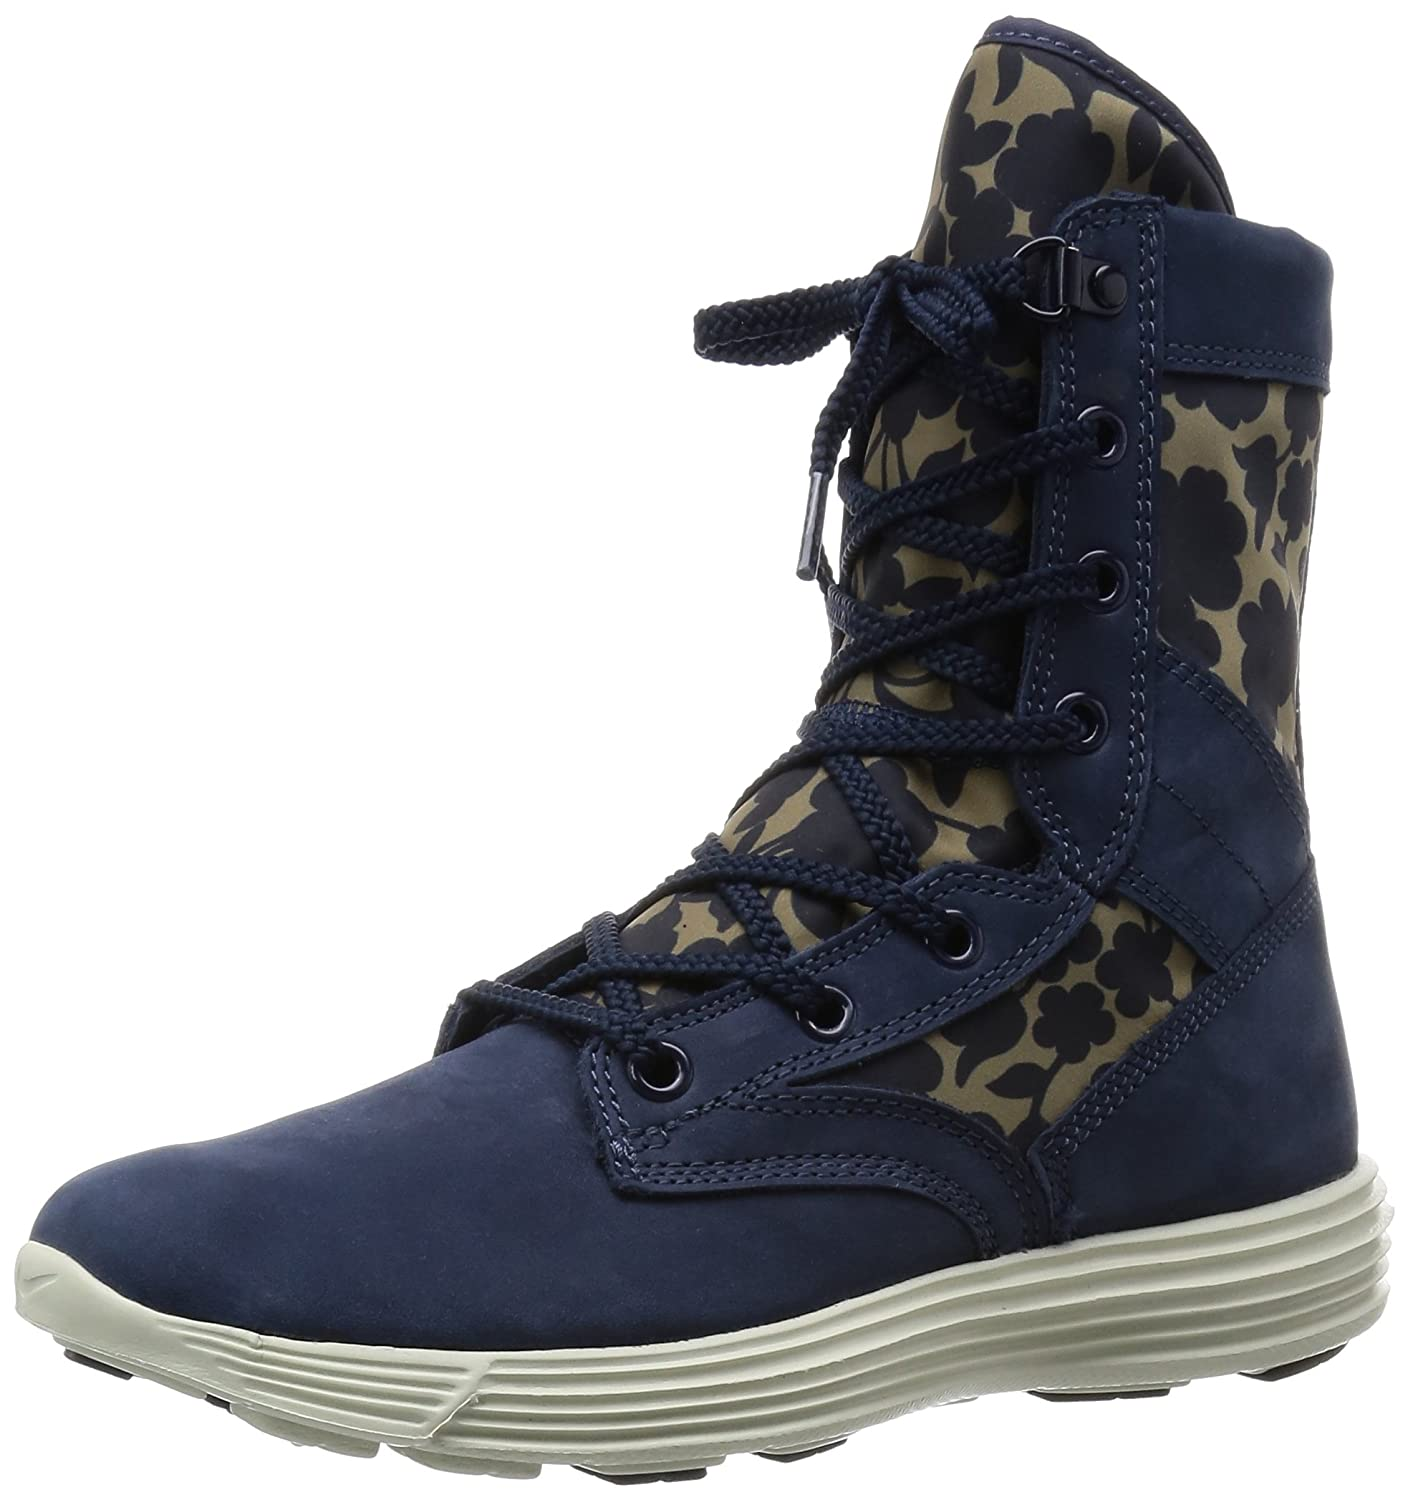 online store cee72 51f5d Amazon.com   NIKE Womens Lunaracer SFB LIB QS Hi Top Boots 821781 Sneakers  Shoes   Fashion Sneakers